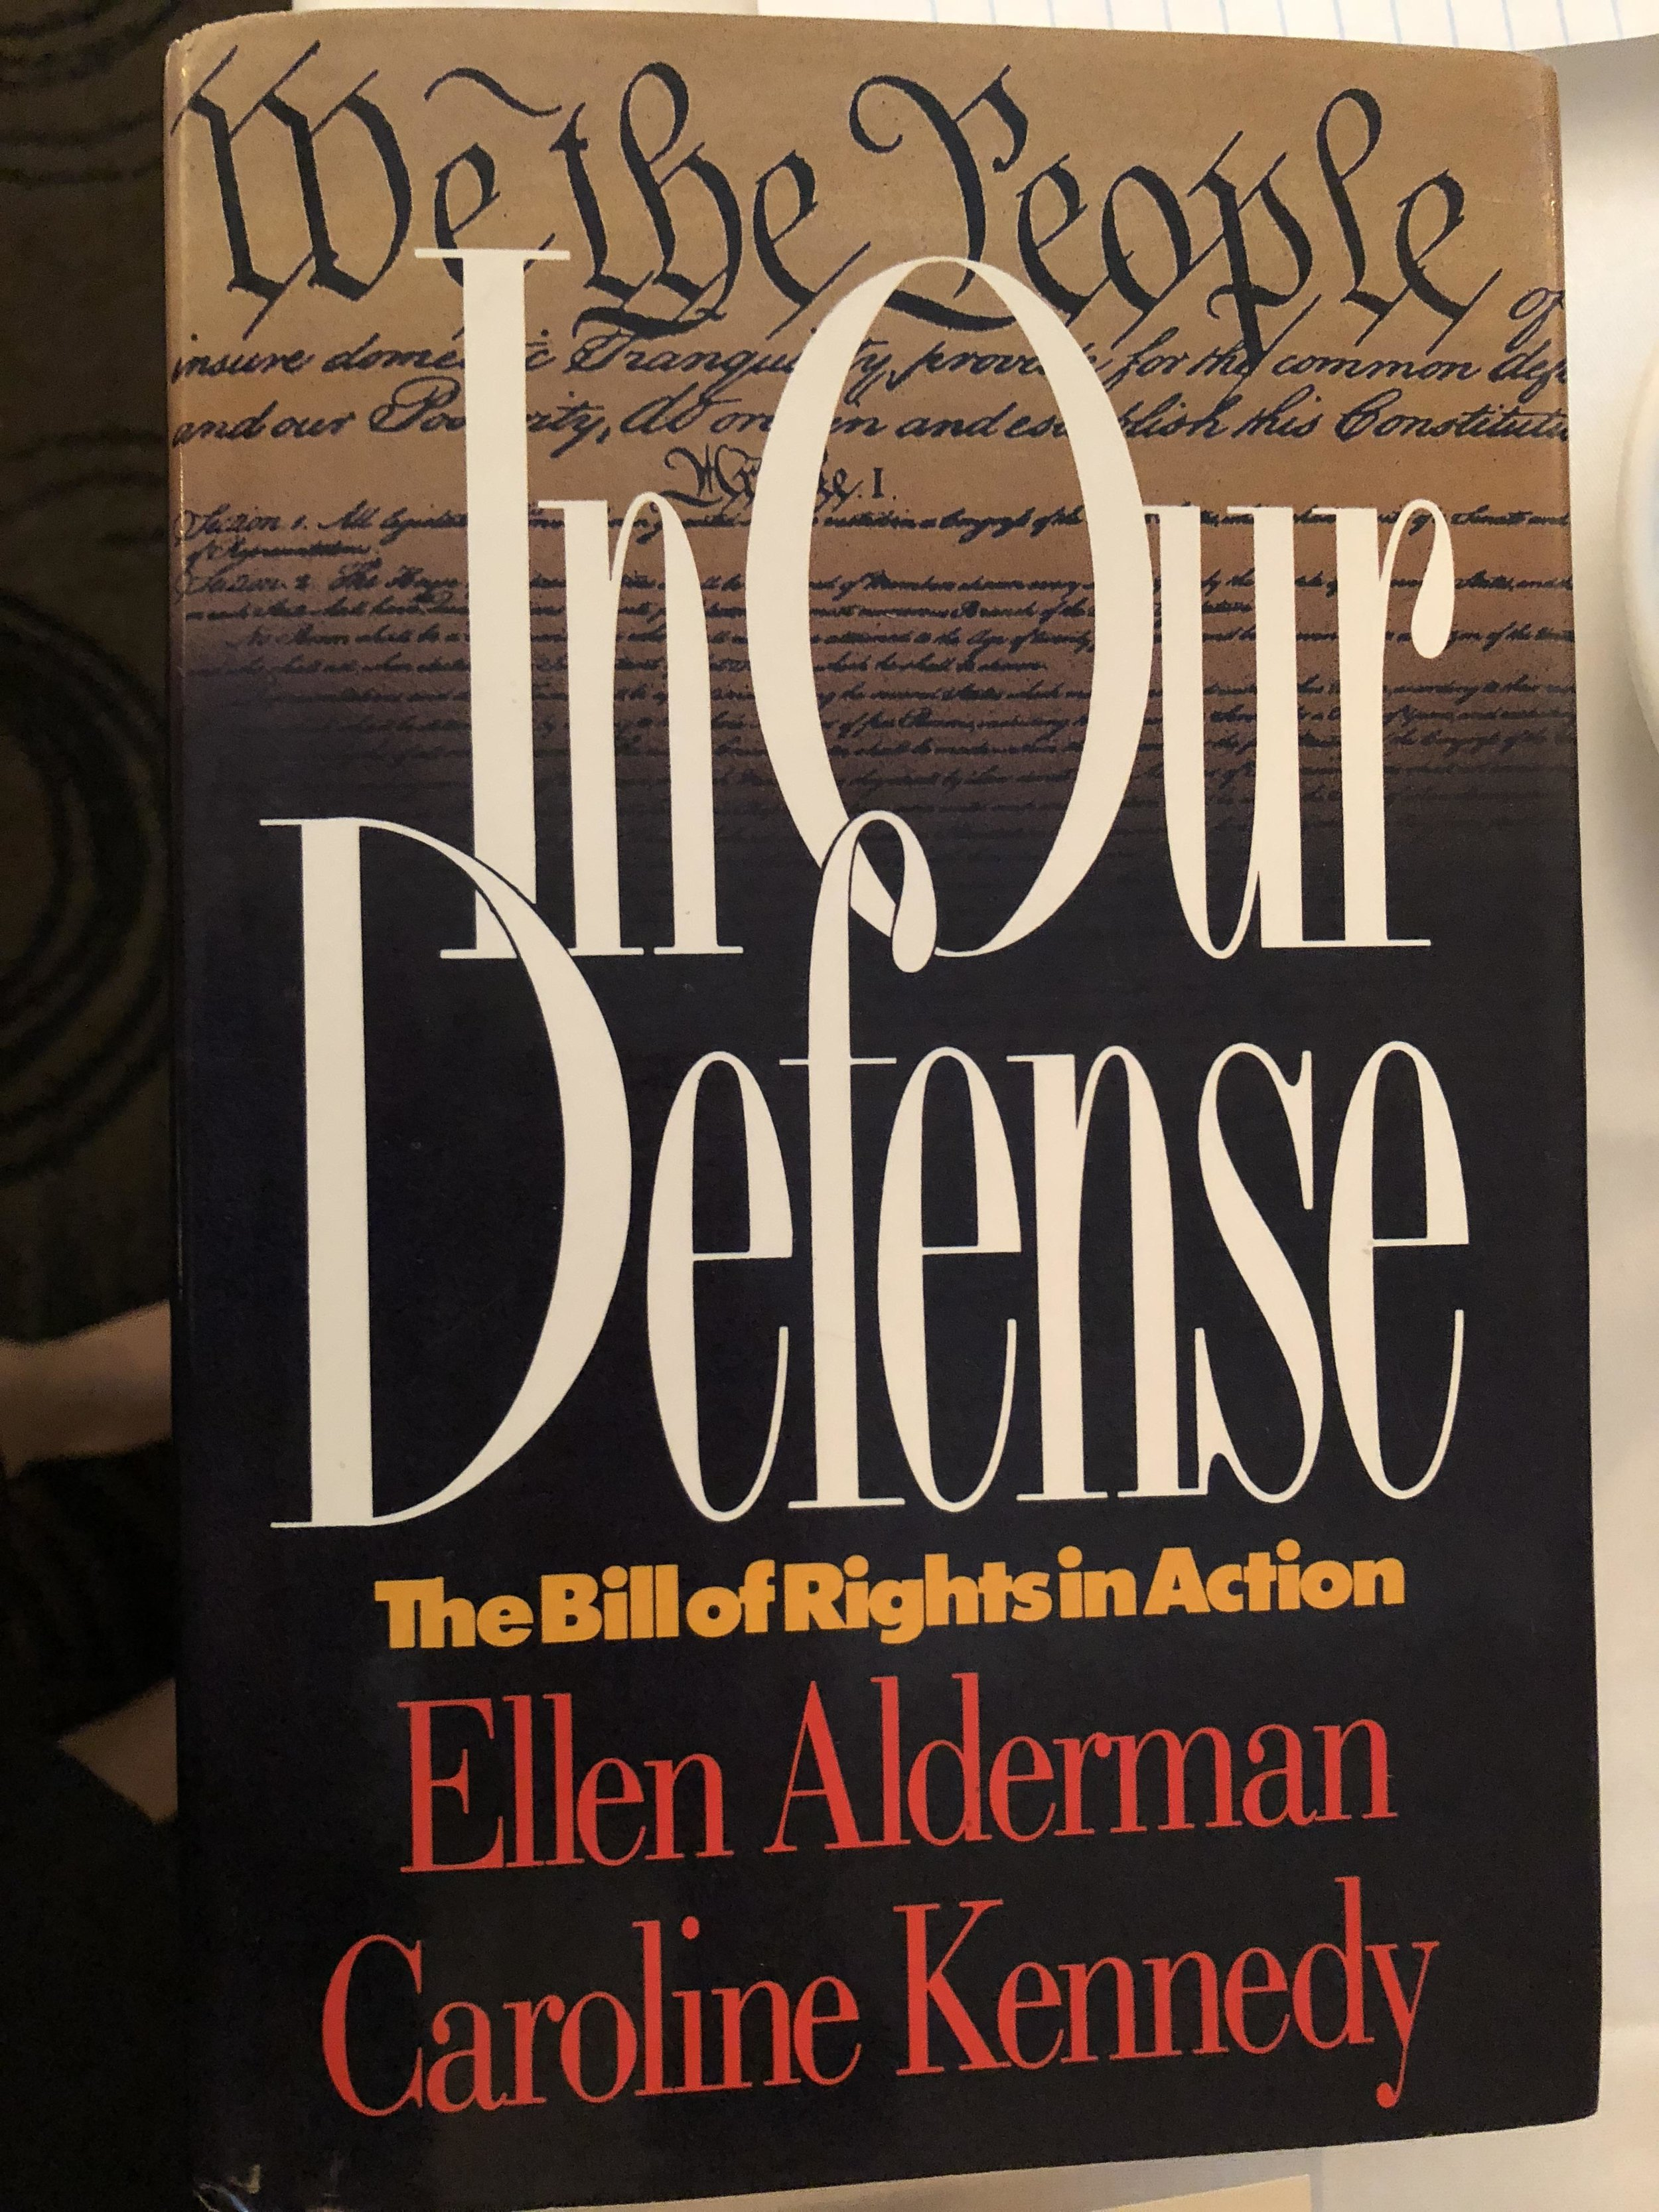 The Biddle Book Award - In Our Defense: The Bill of Rights in Action by Ellen Alderman and Caroline Kennedy